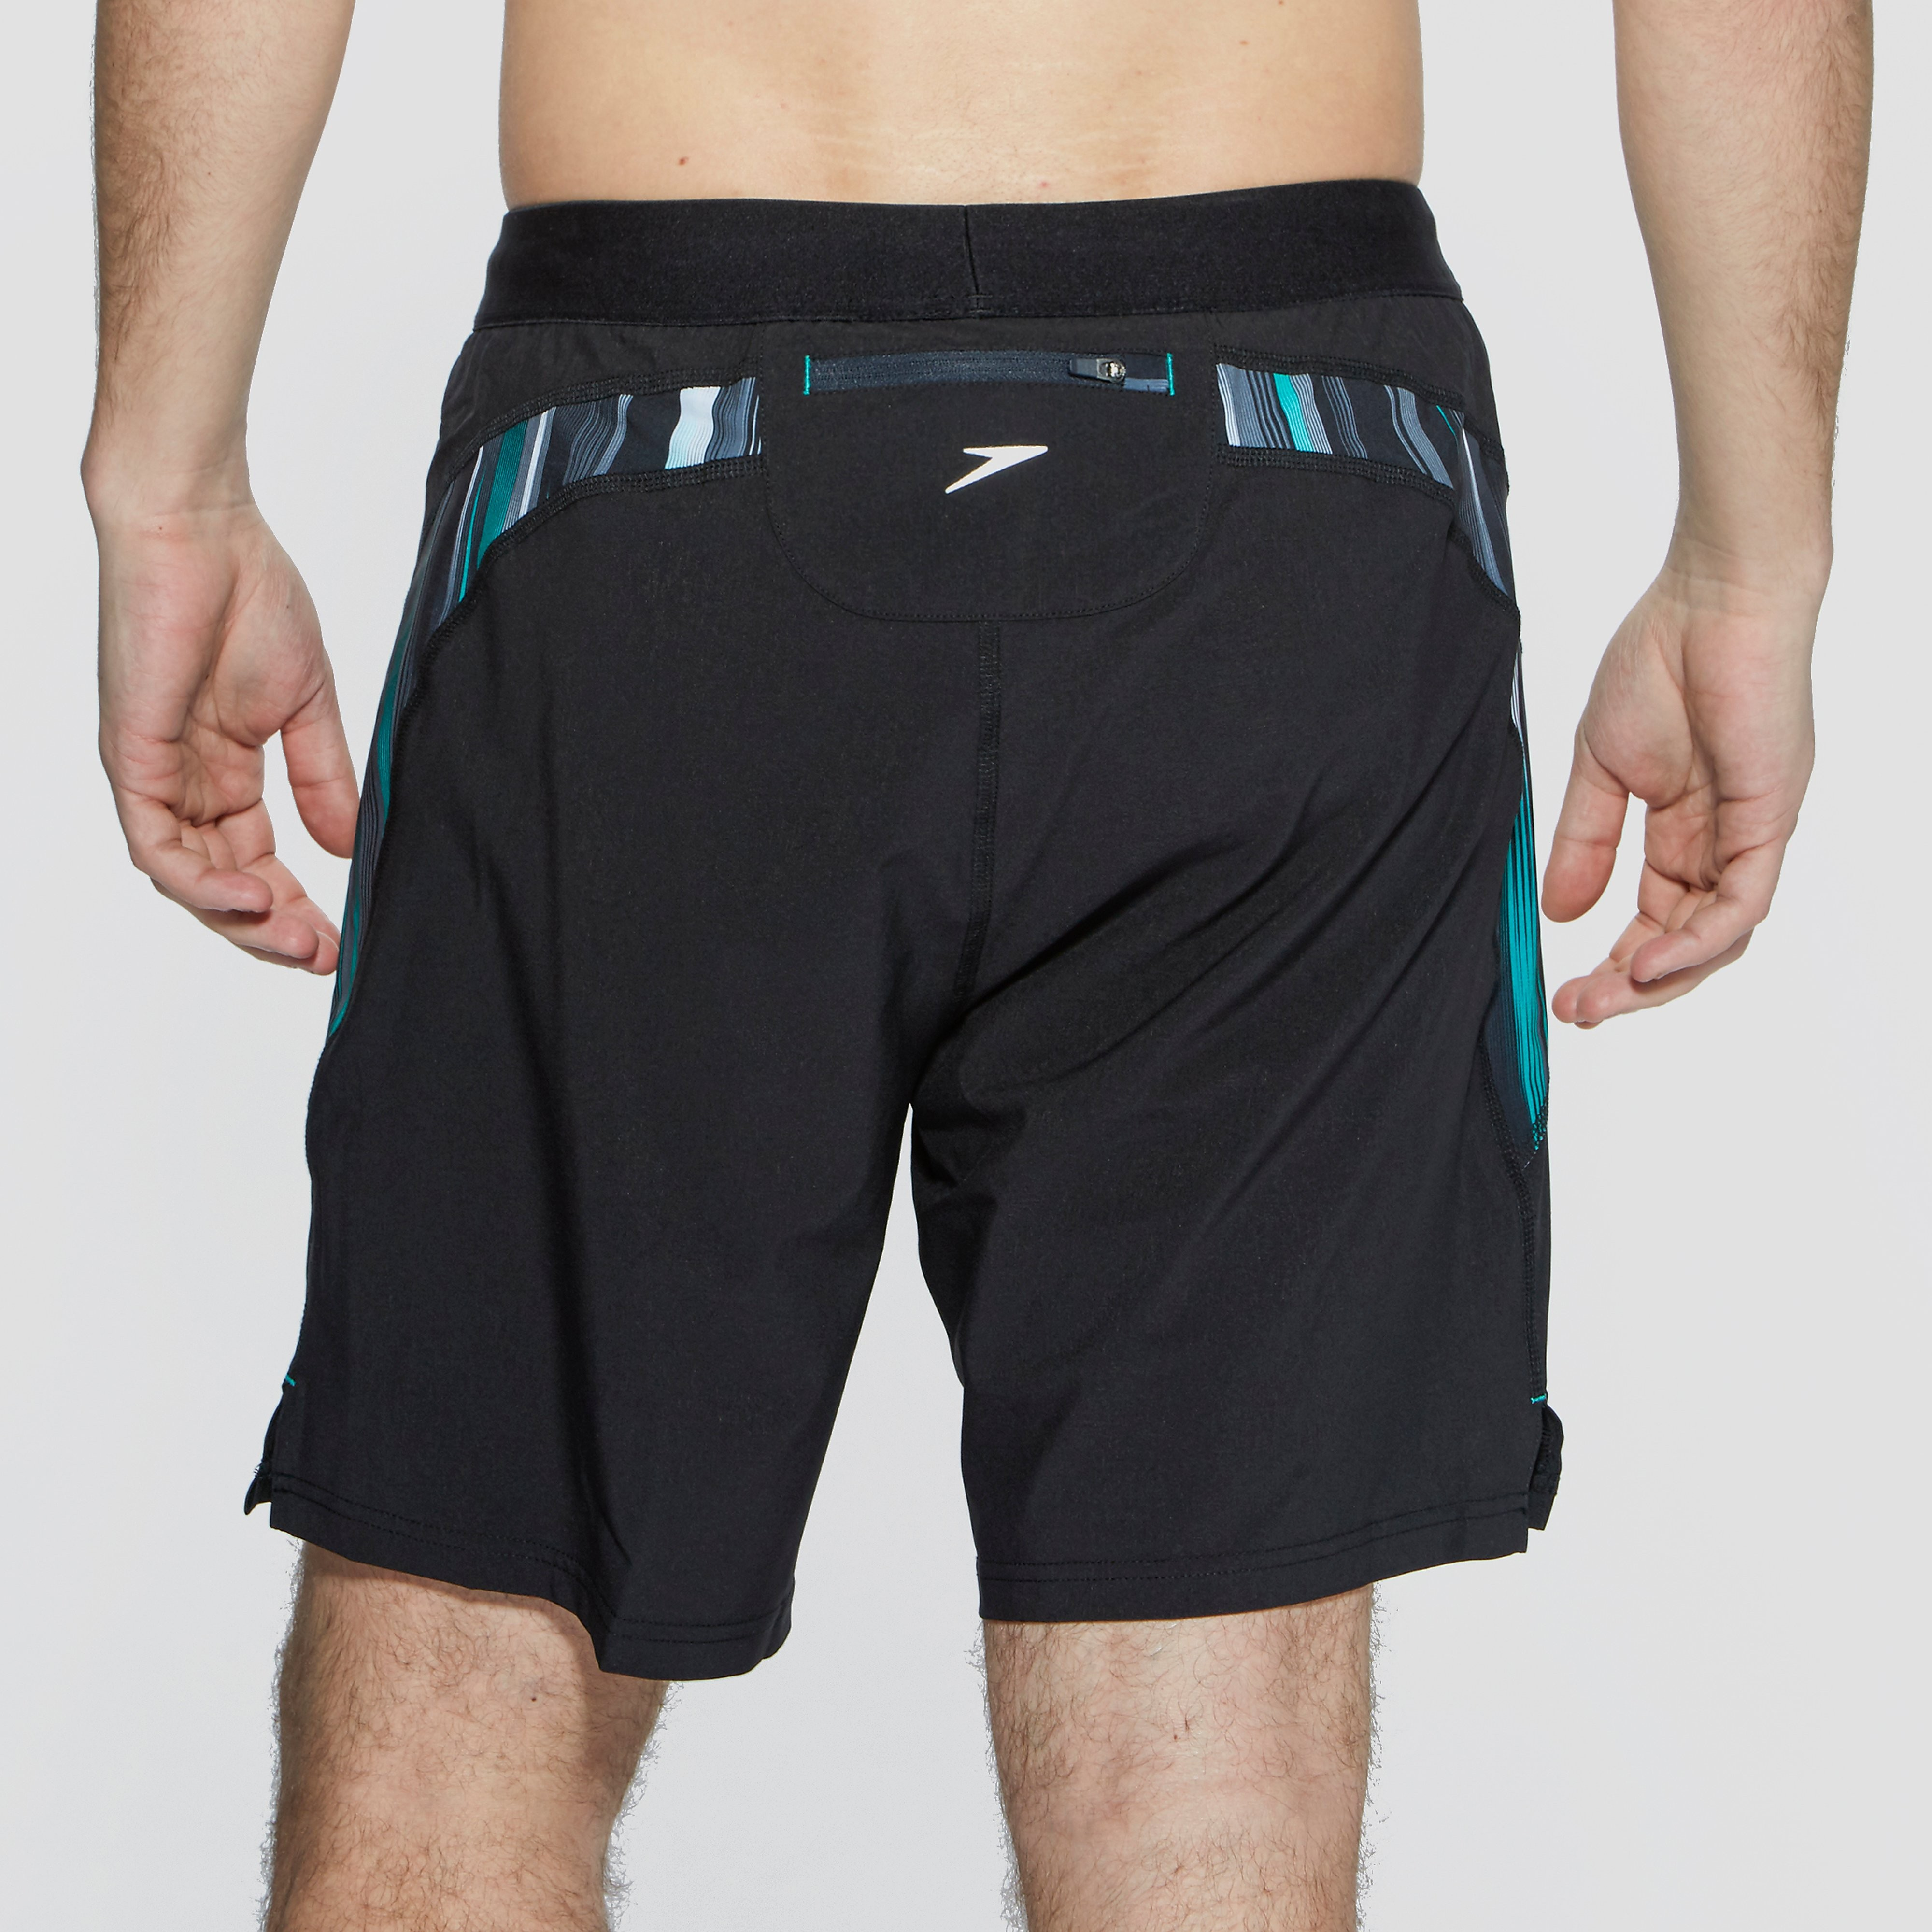 Speedo Glide Hybrid Men's Swimming Shorts